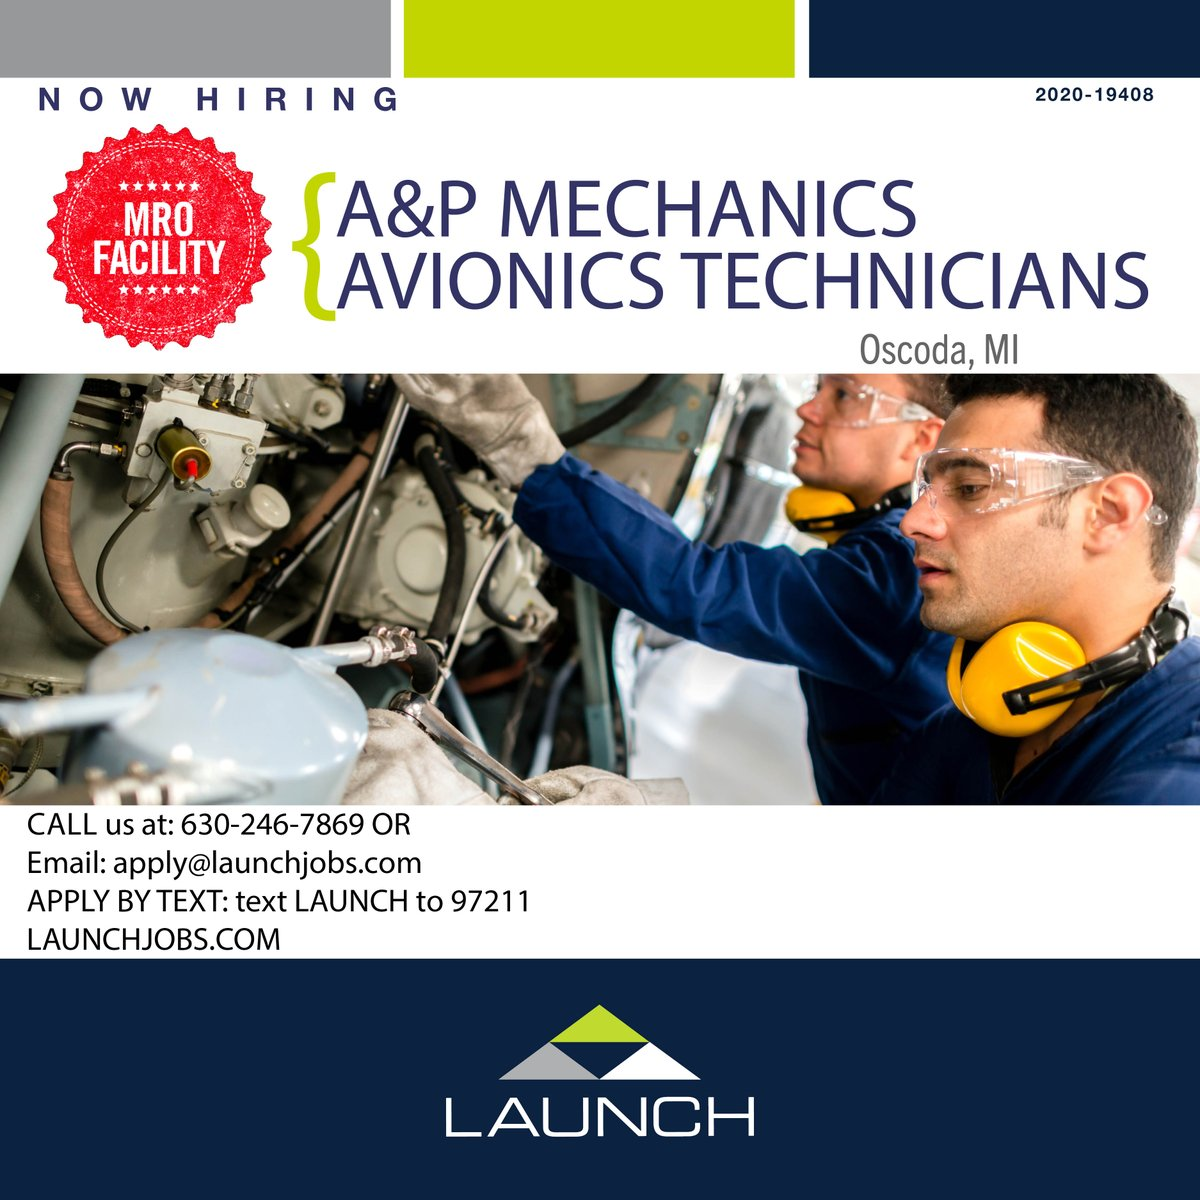 APPLY FROM OUR WEBSITE: https://t.co/DdXQrePMmF  #GoWithLAUNCH #weleadwepartnerwecare #aviation #aerospace #maintenance #overhaul #interior #avionics #install #troubleshoot #inspector #assembly #materials #composites #repair #airframe #cargoairline #commercialaircraft https://t.co/S5Dc3Y7m1W